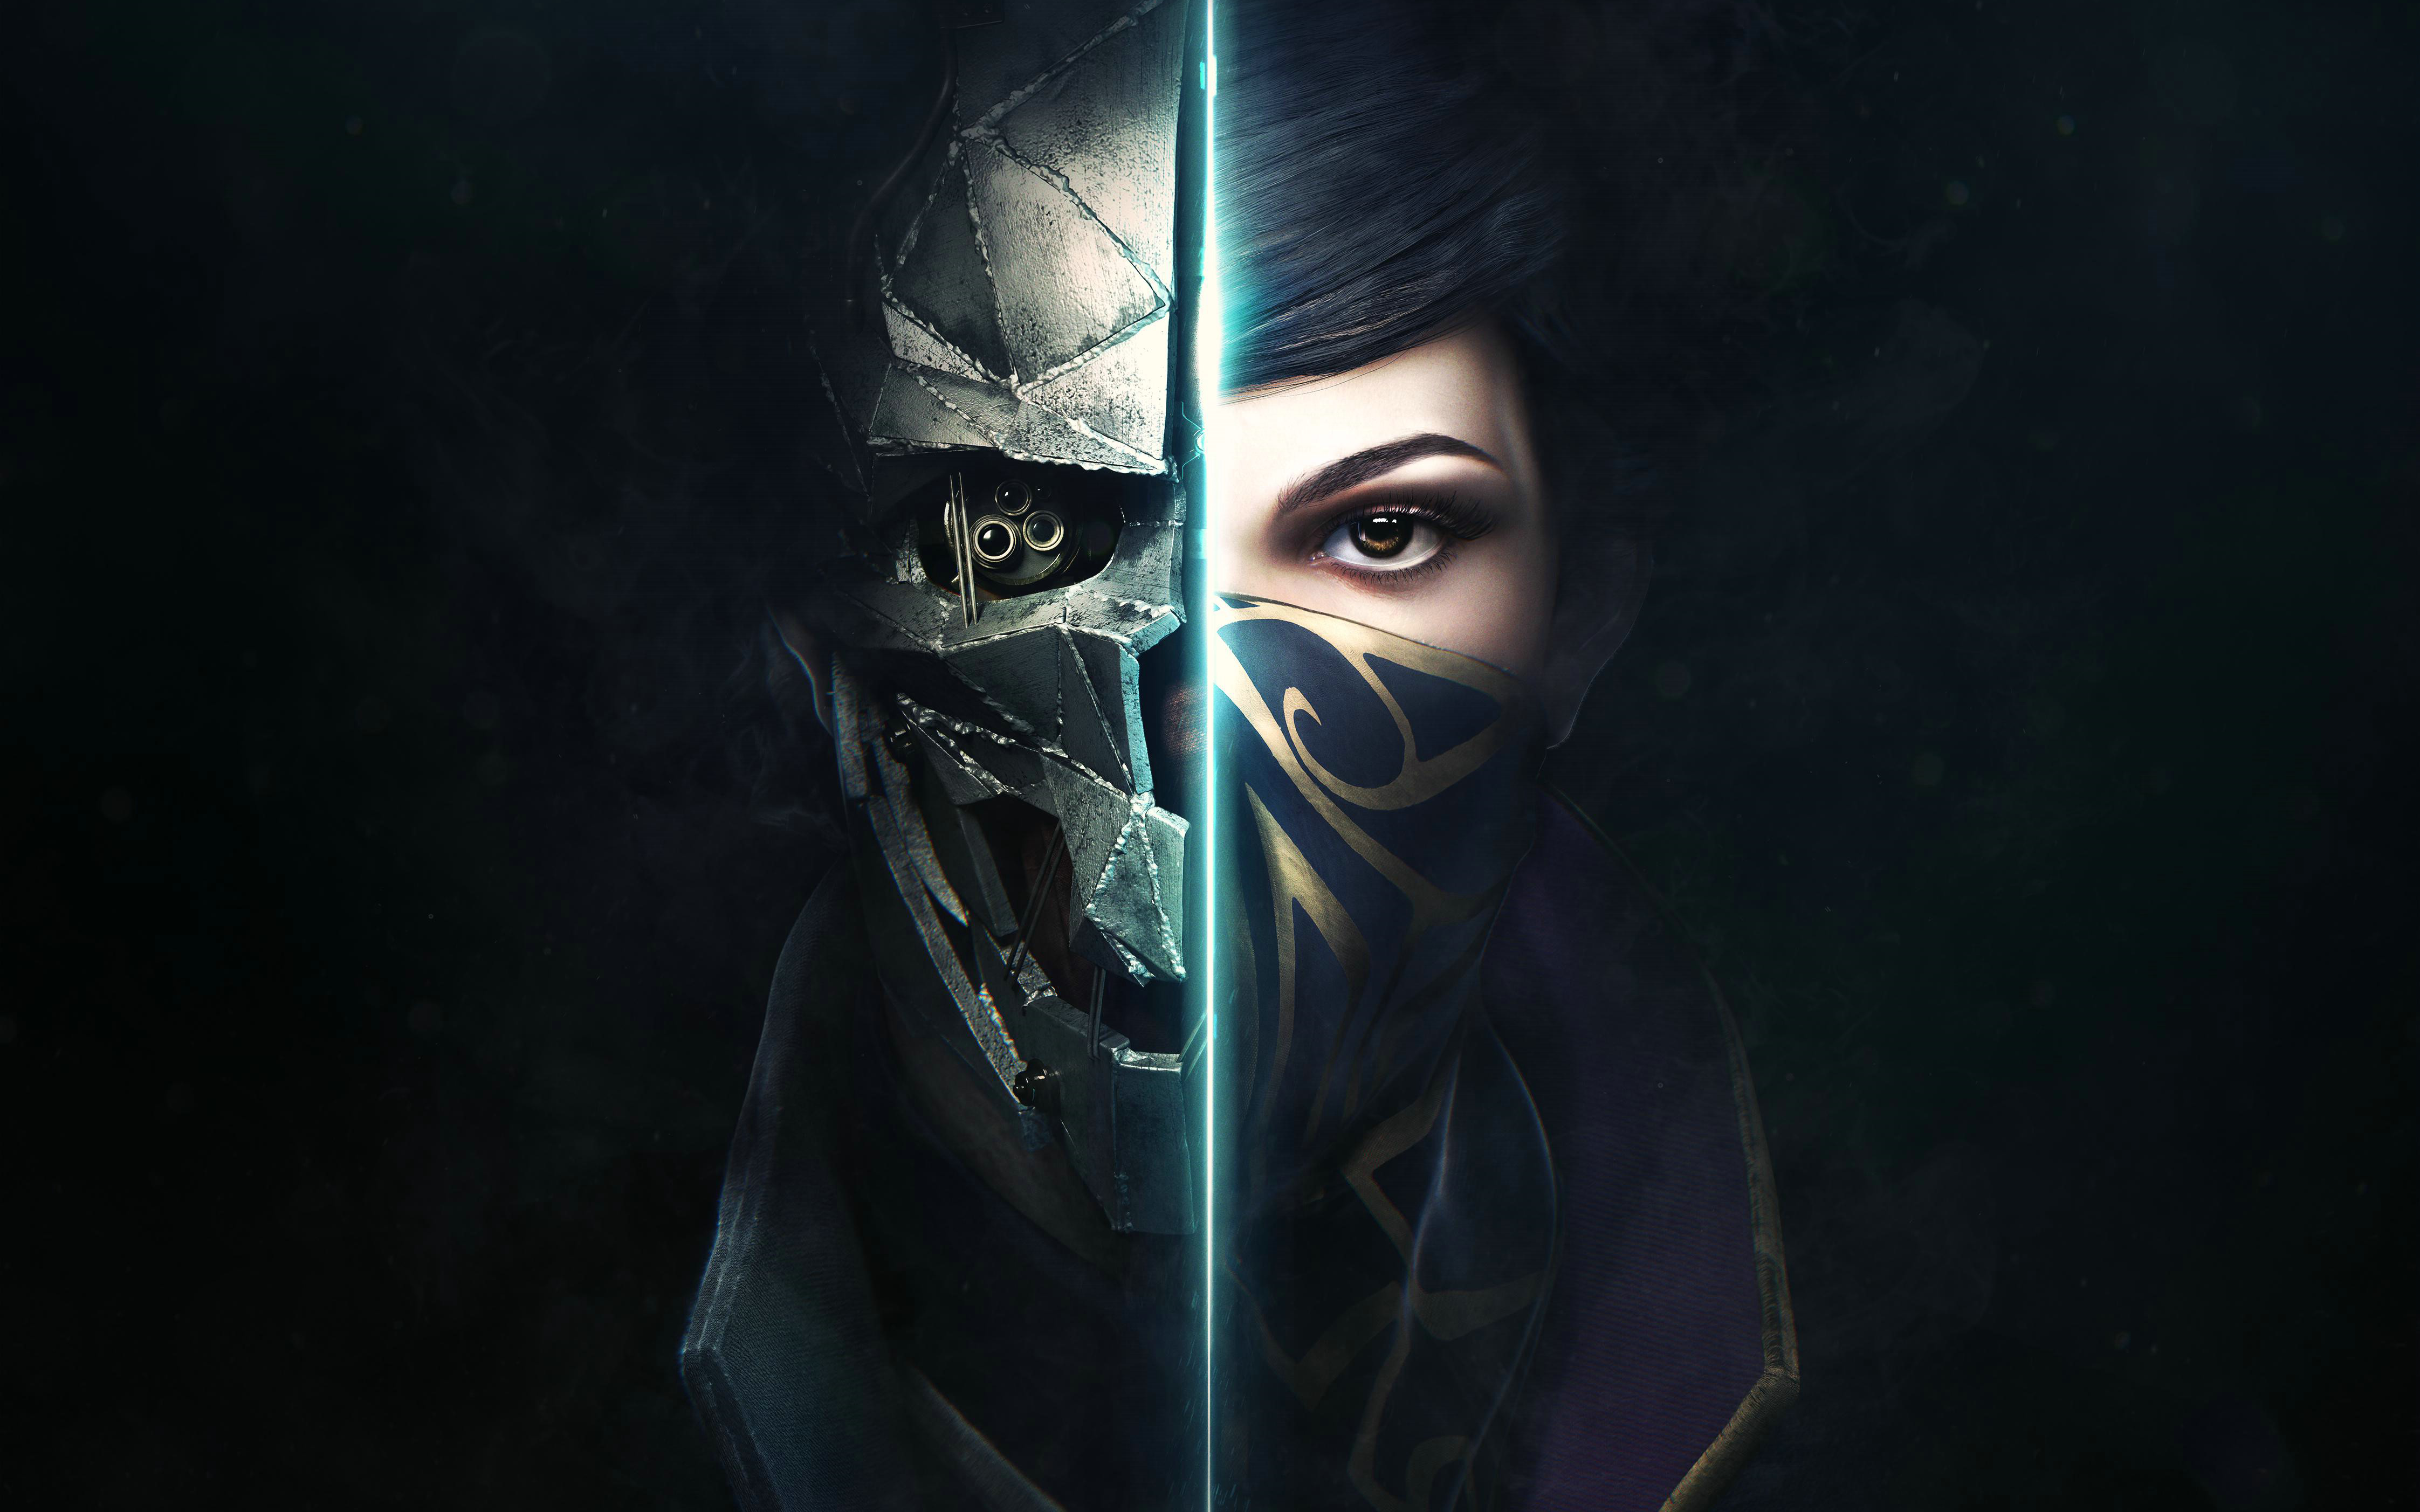 Dishonored Wallpaper 4k: 63 Dishonored 2 HD Wallpapers